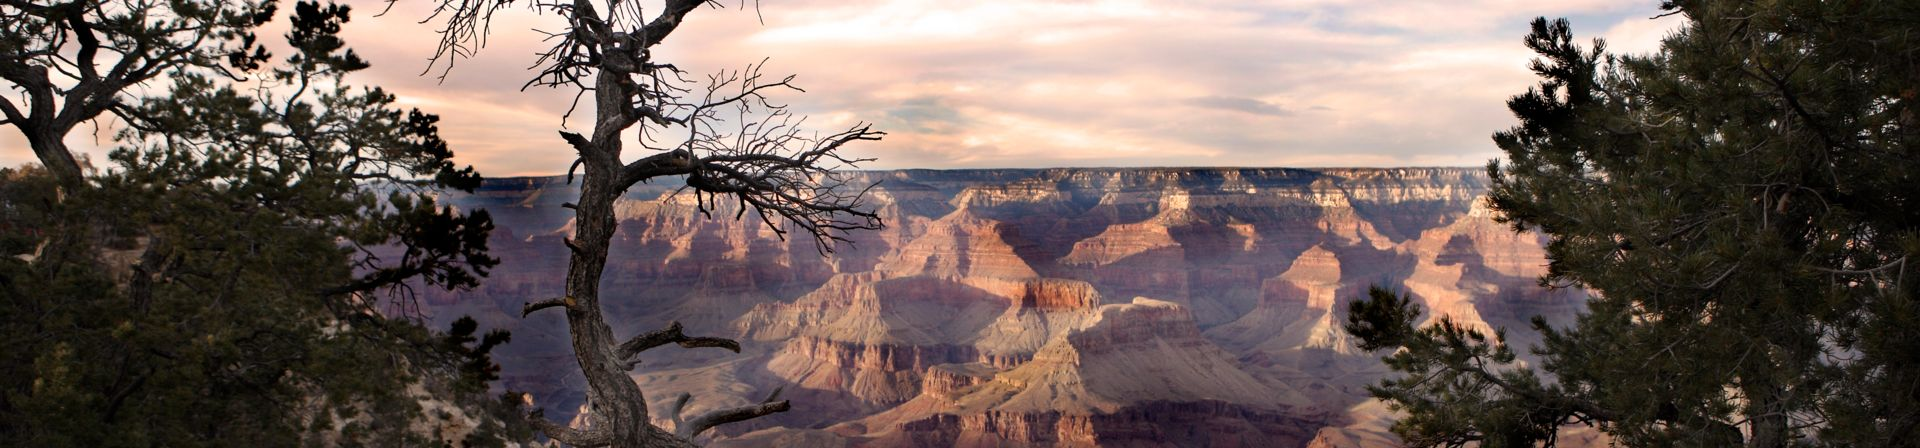 A panoramic Grand Canyon South Rim tour viewpoint seen at sunset, with a tree in the foreground.